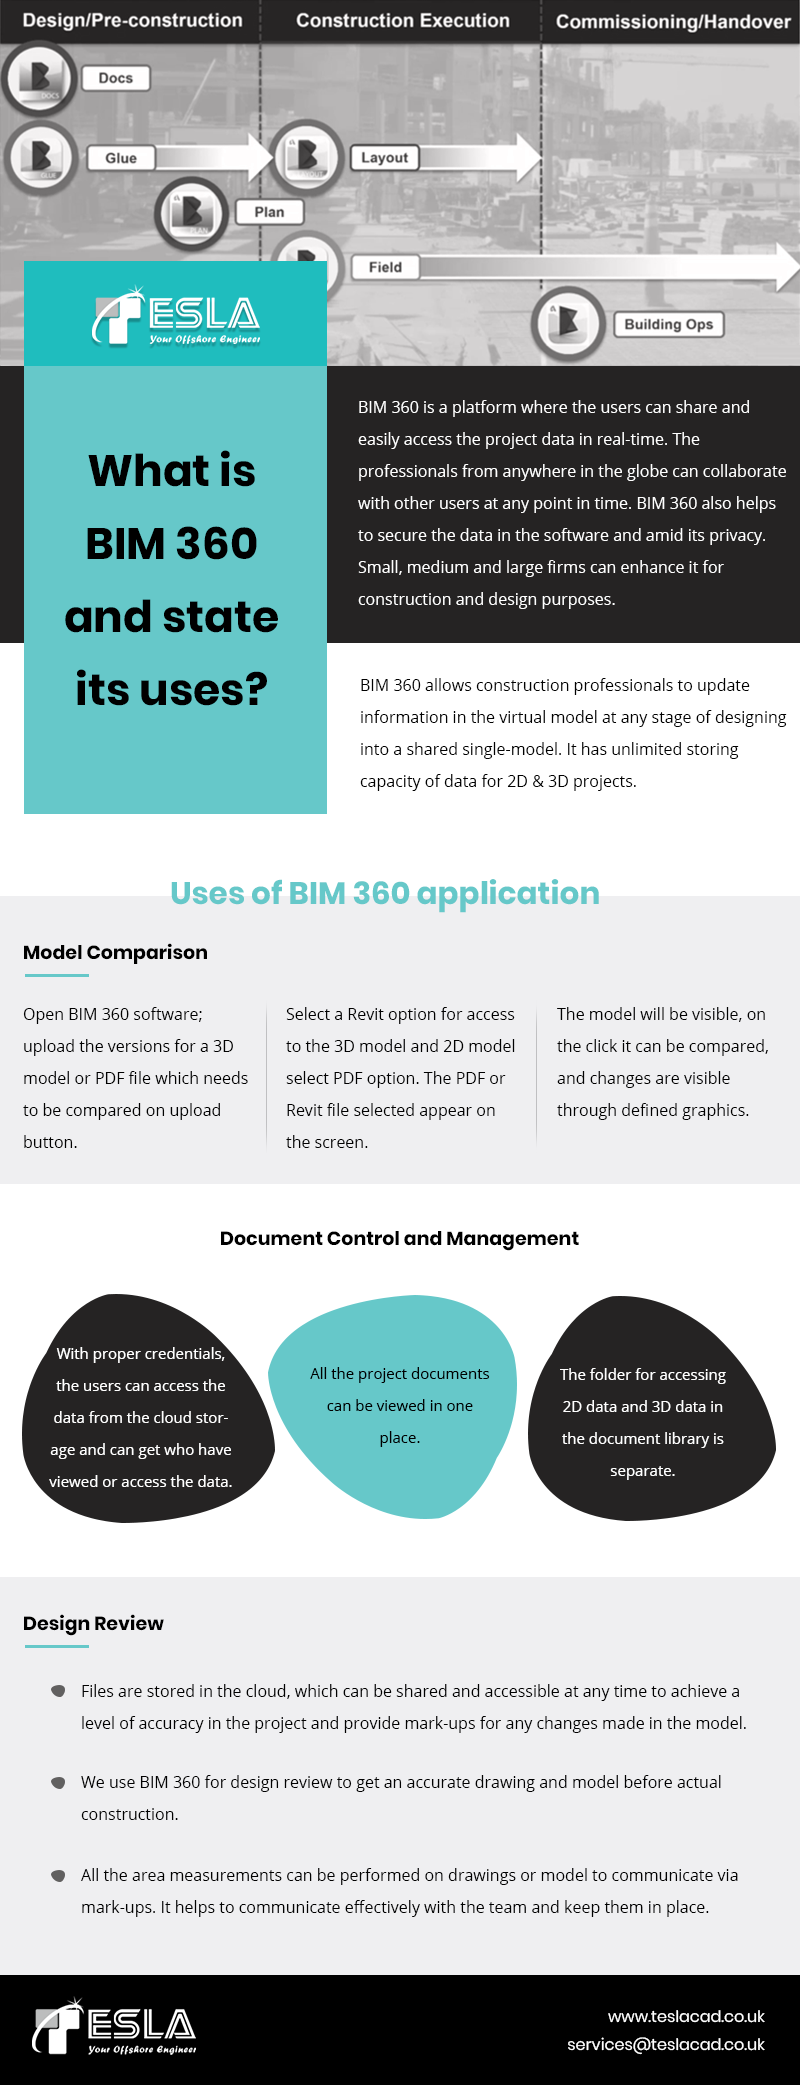 What is BIM 360 and state its uses?